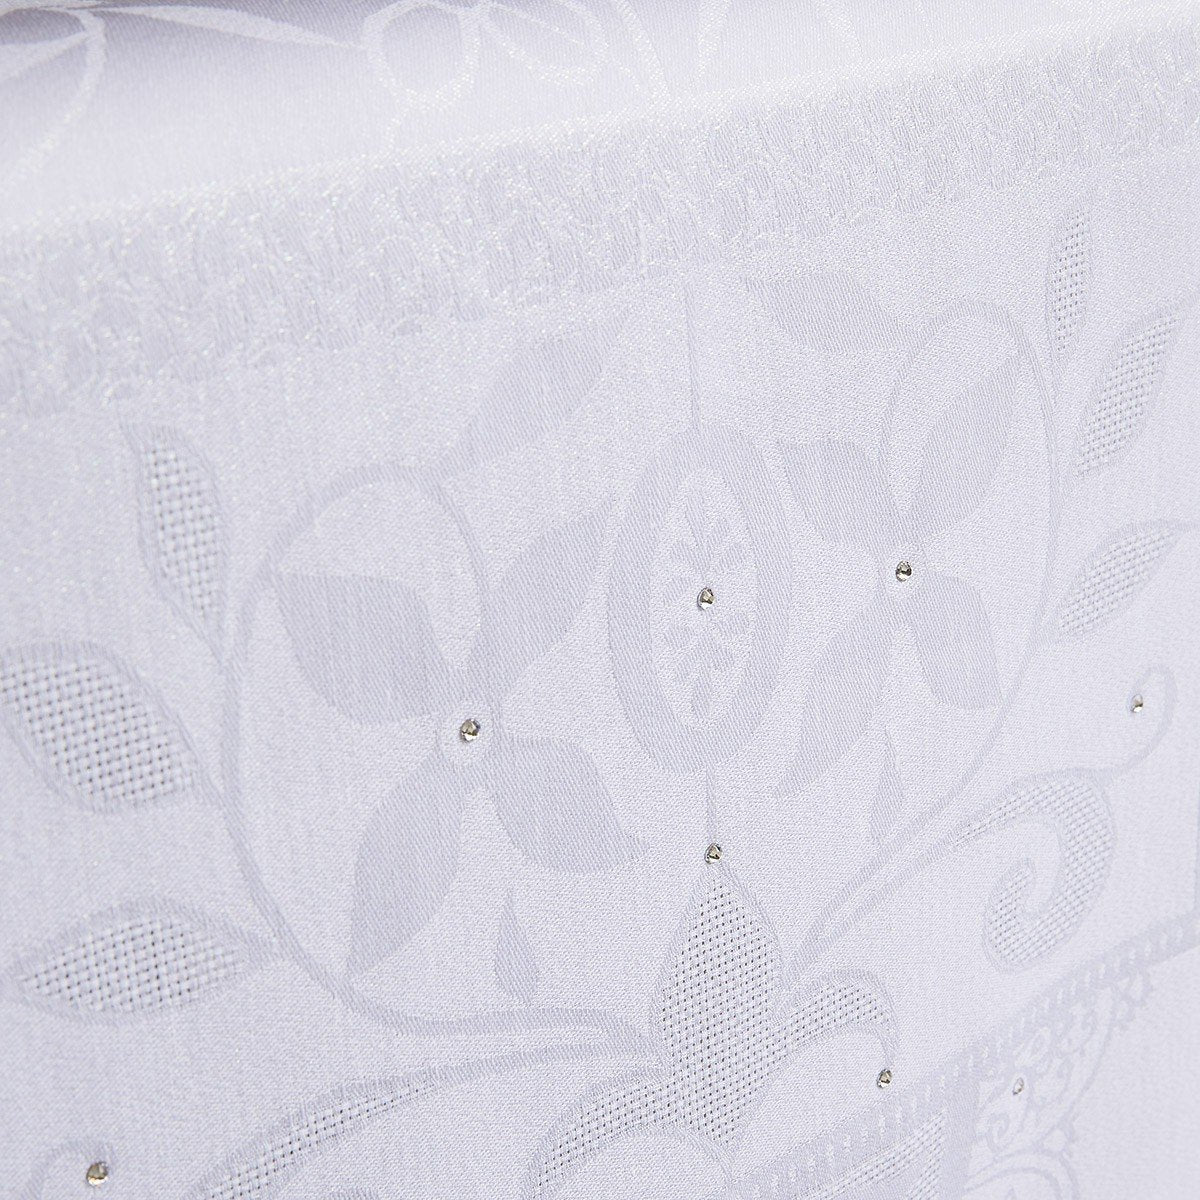 Venezia Cristal Table Linens Le Jacquard Français Fig Linens Tablecloth